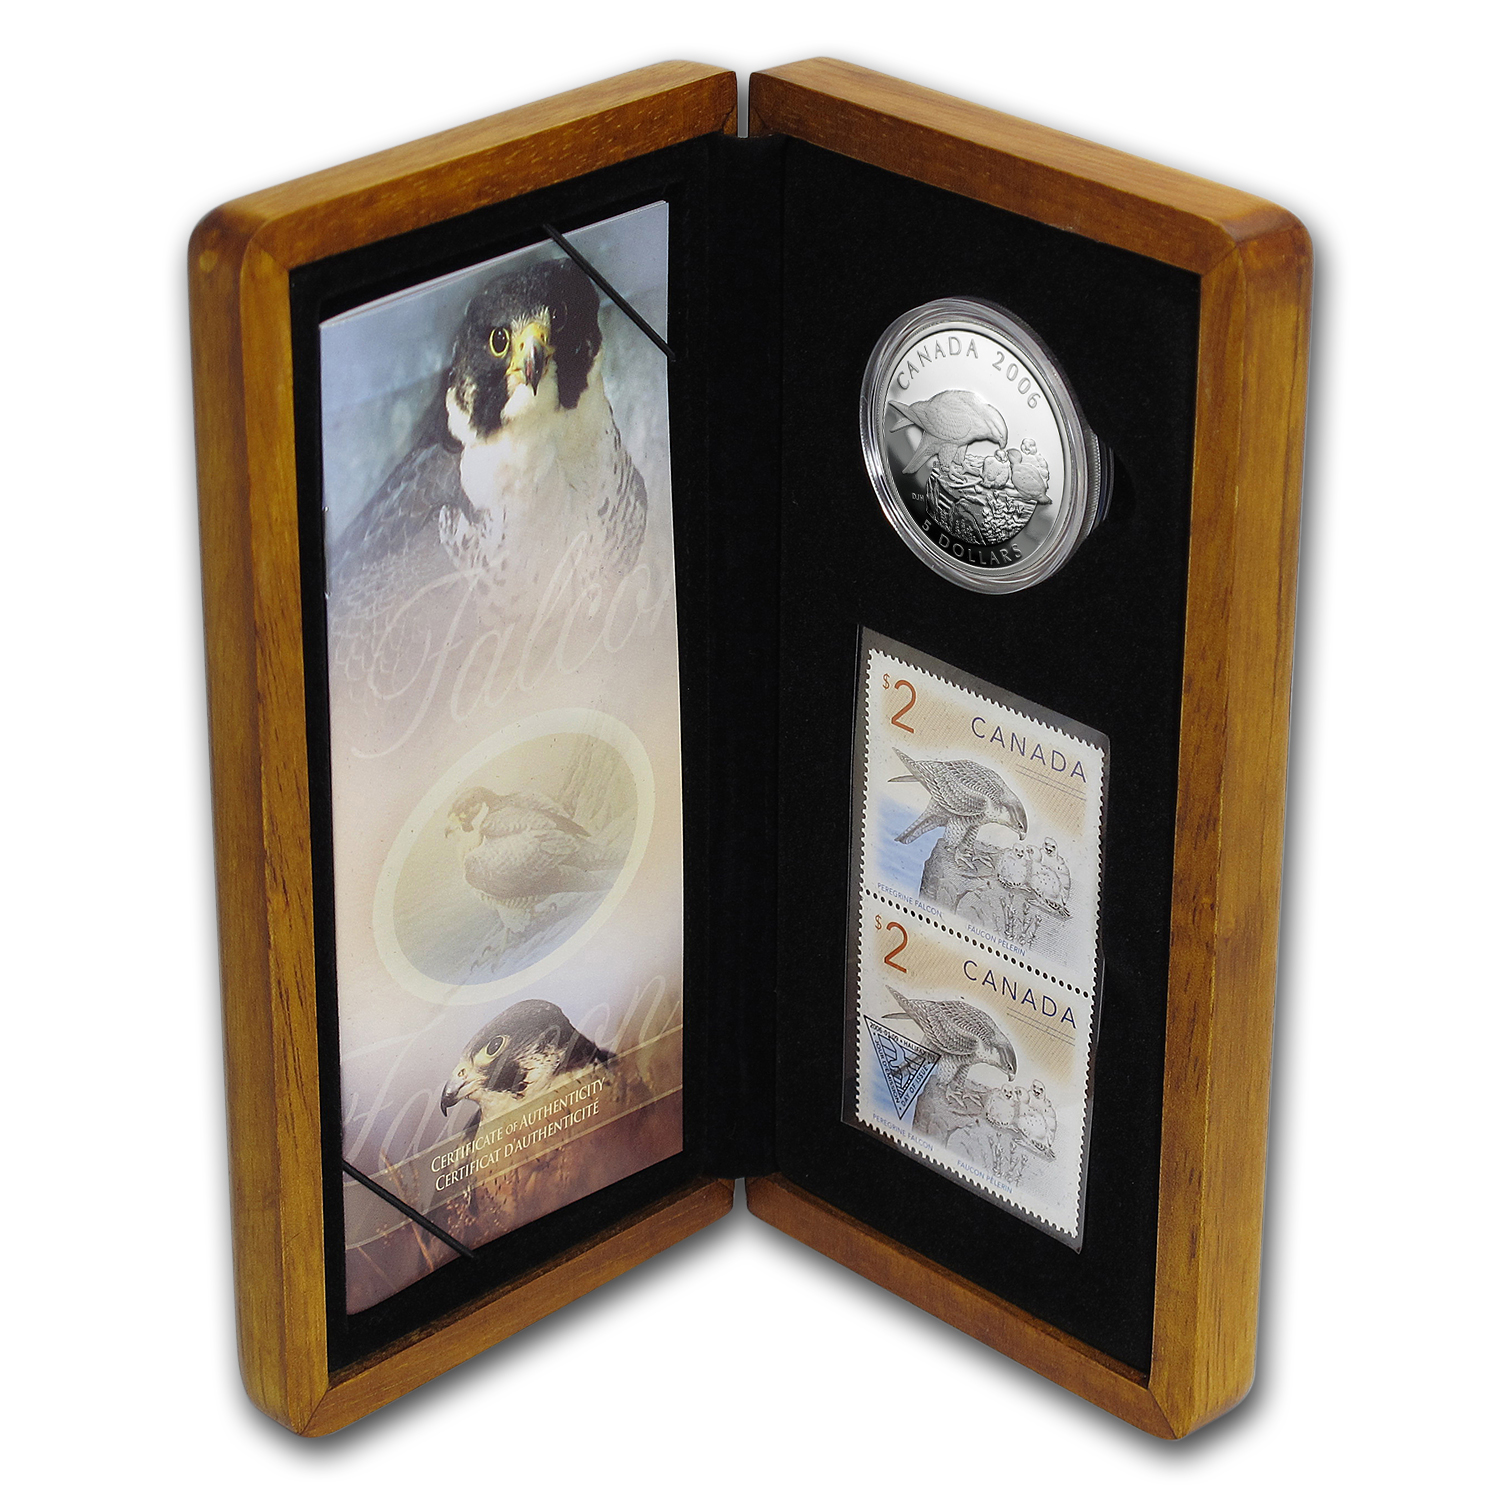 2006 Canada 1 oz Silver Peregrine Falcon Coin and Stamp Set